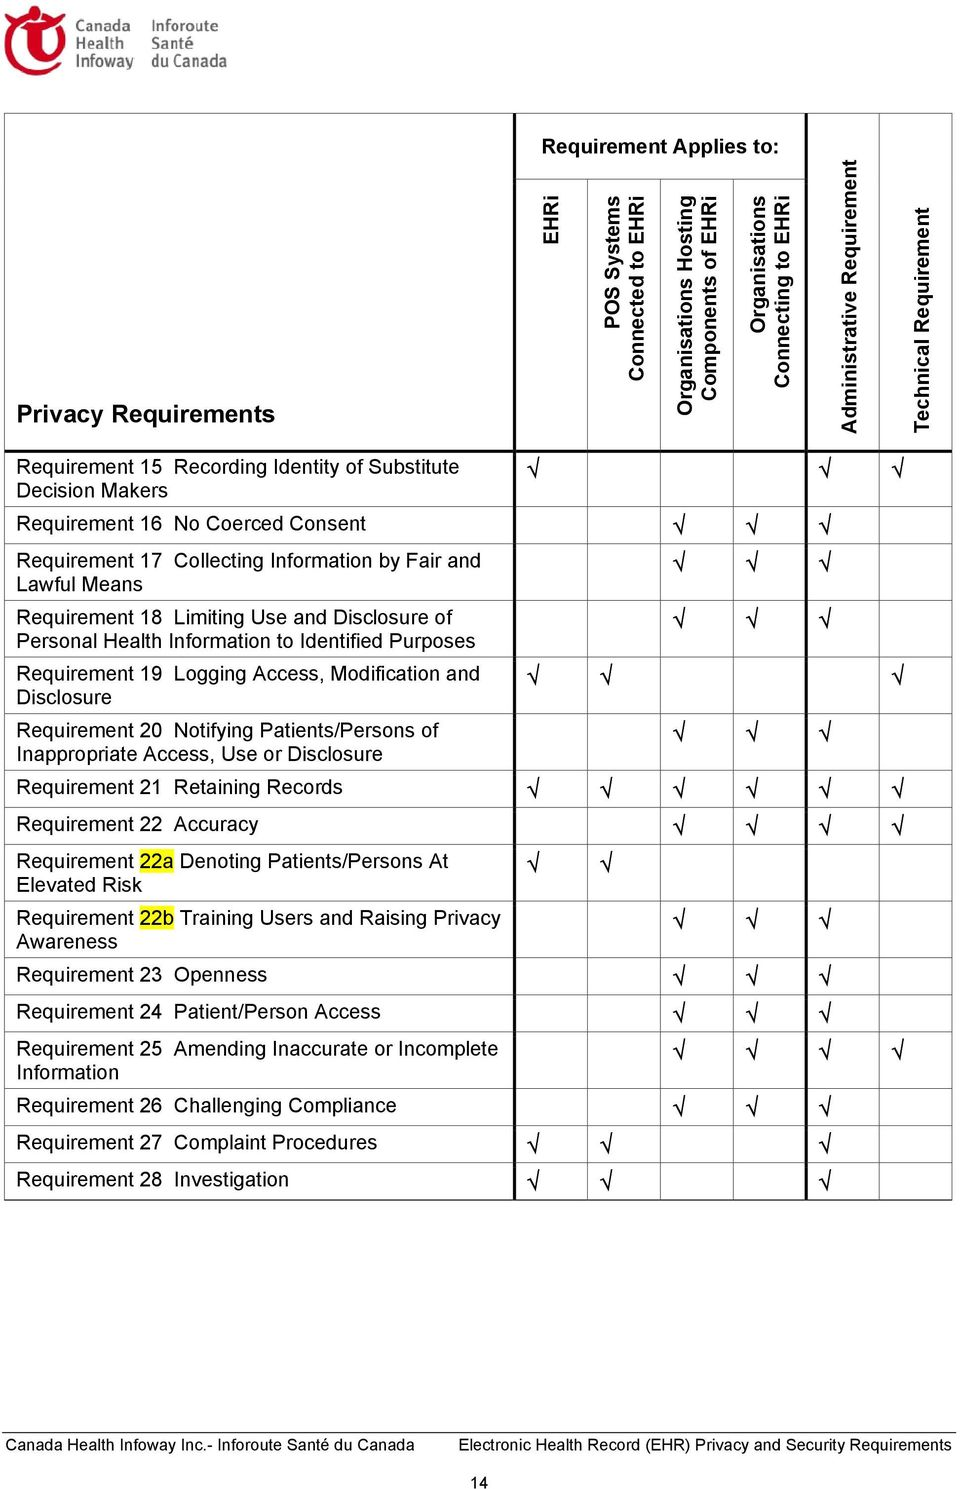 Disclosure 20 Notifying Patients/Persons of Inappropriate Access, Use or Disclosure 21 Retaining Records 22 Accuracy 22a Denoting Patients/Persons At Elevated Risk 22b Training Users and Raising